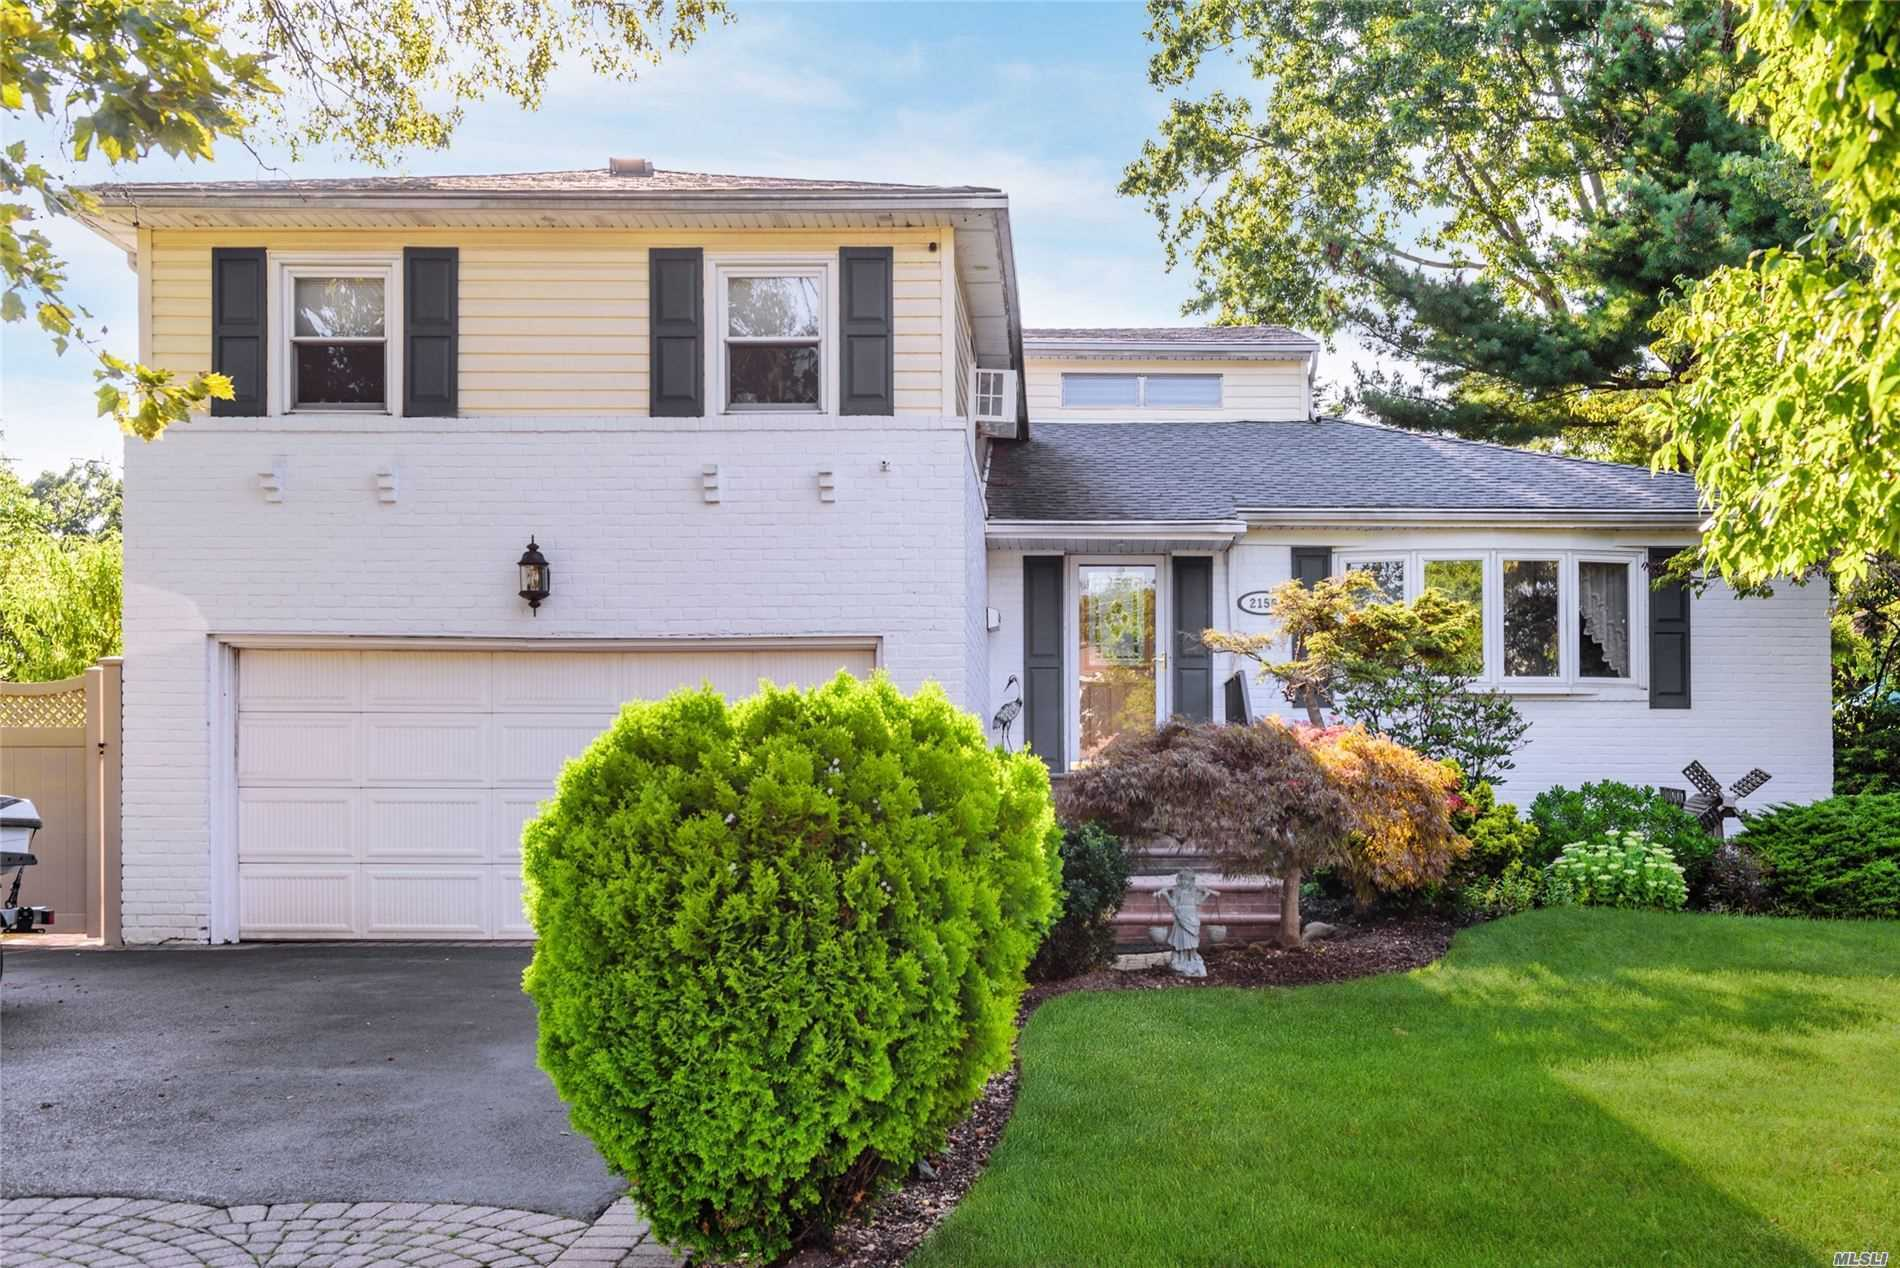 2156 Kenwood Pl - Bellmore, New York